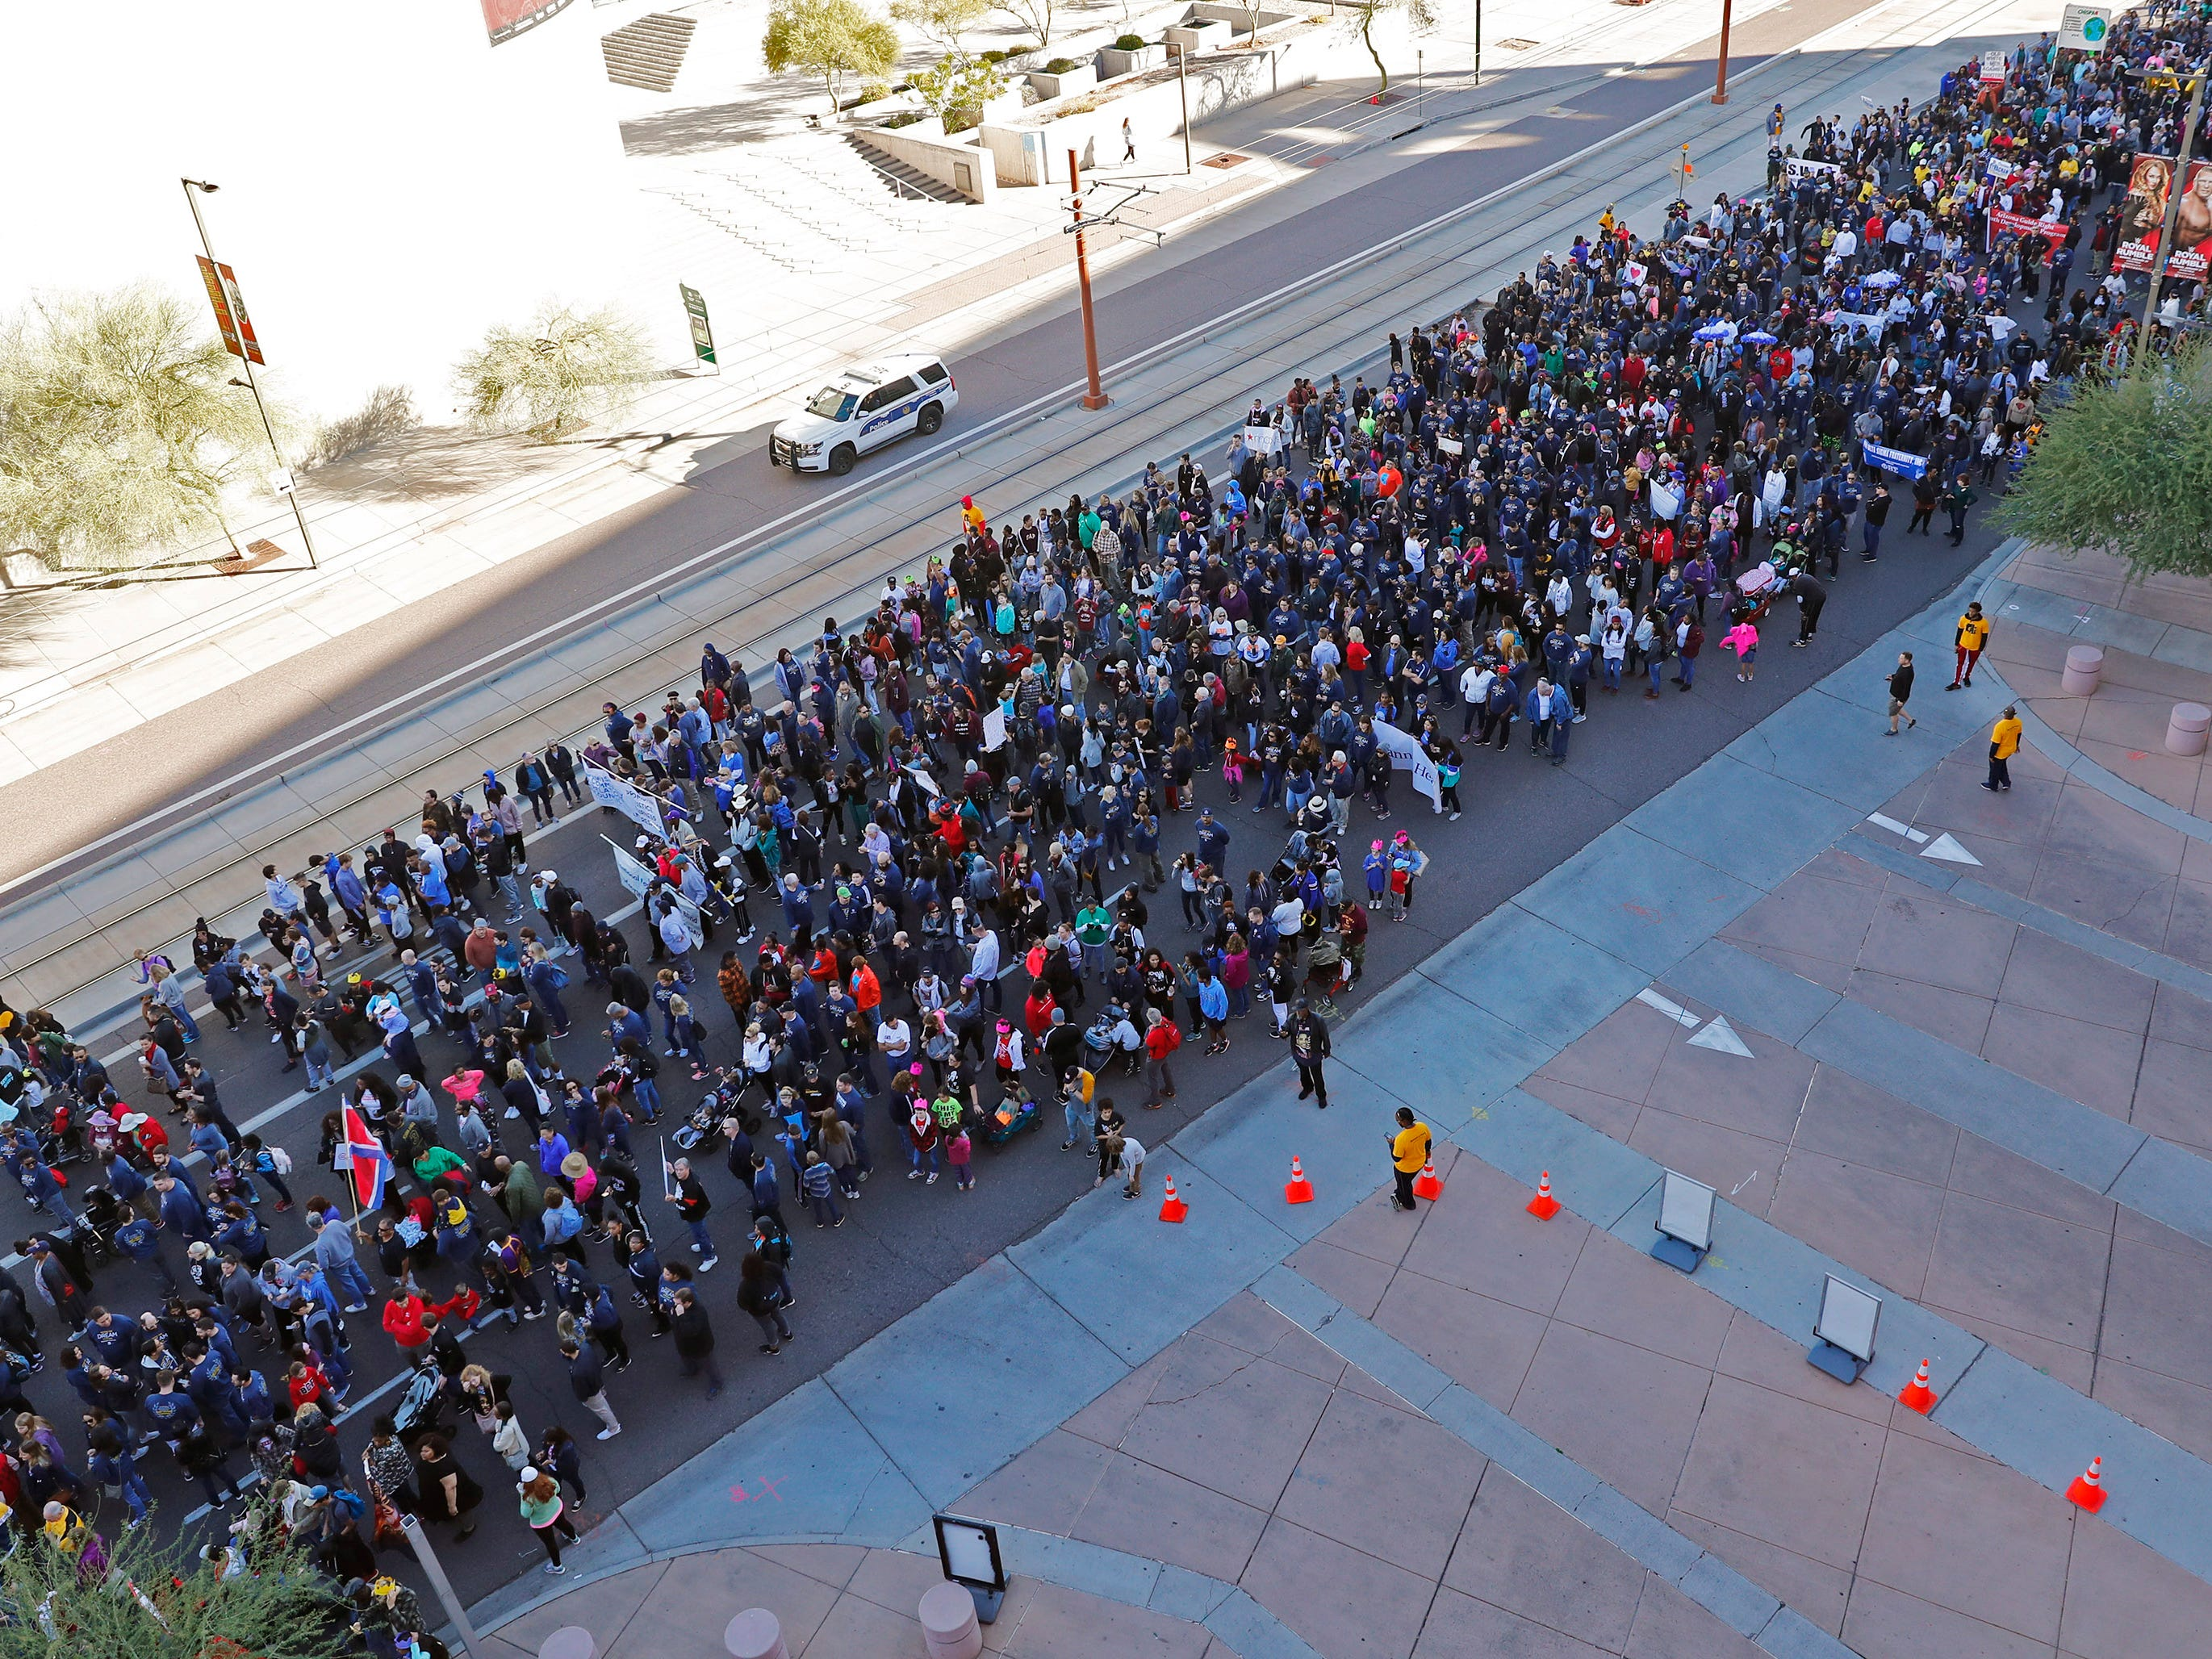 Thousands of people march honoring Dr. Martin Luther King in downtown Phoenix, AZ.